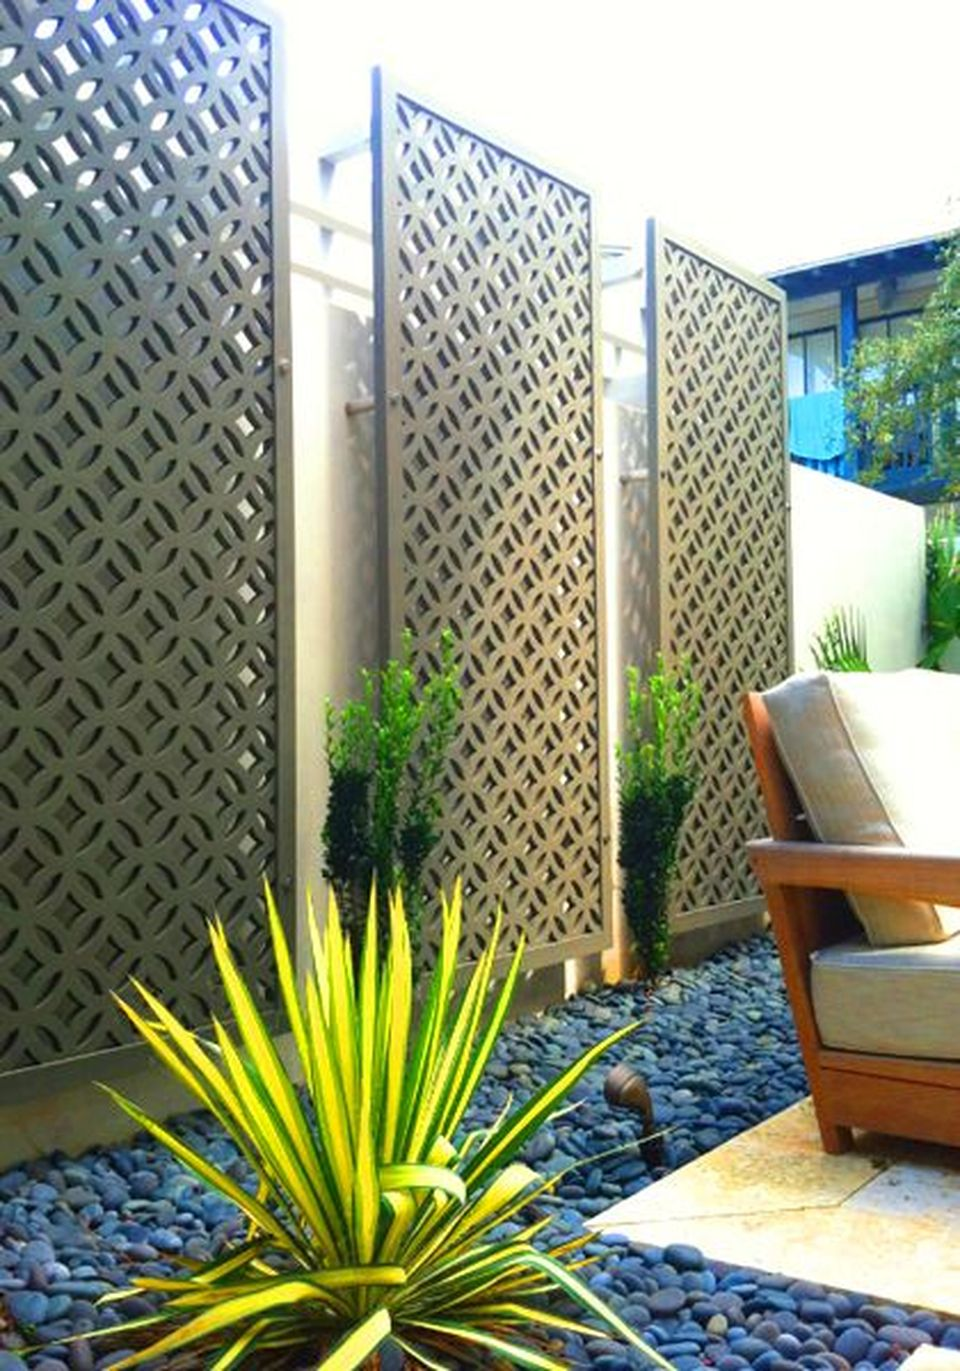 Cool Privacy Fence Wooden Design for Backyard 60 - Hoommy.com